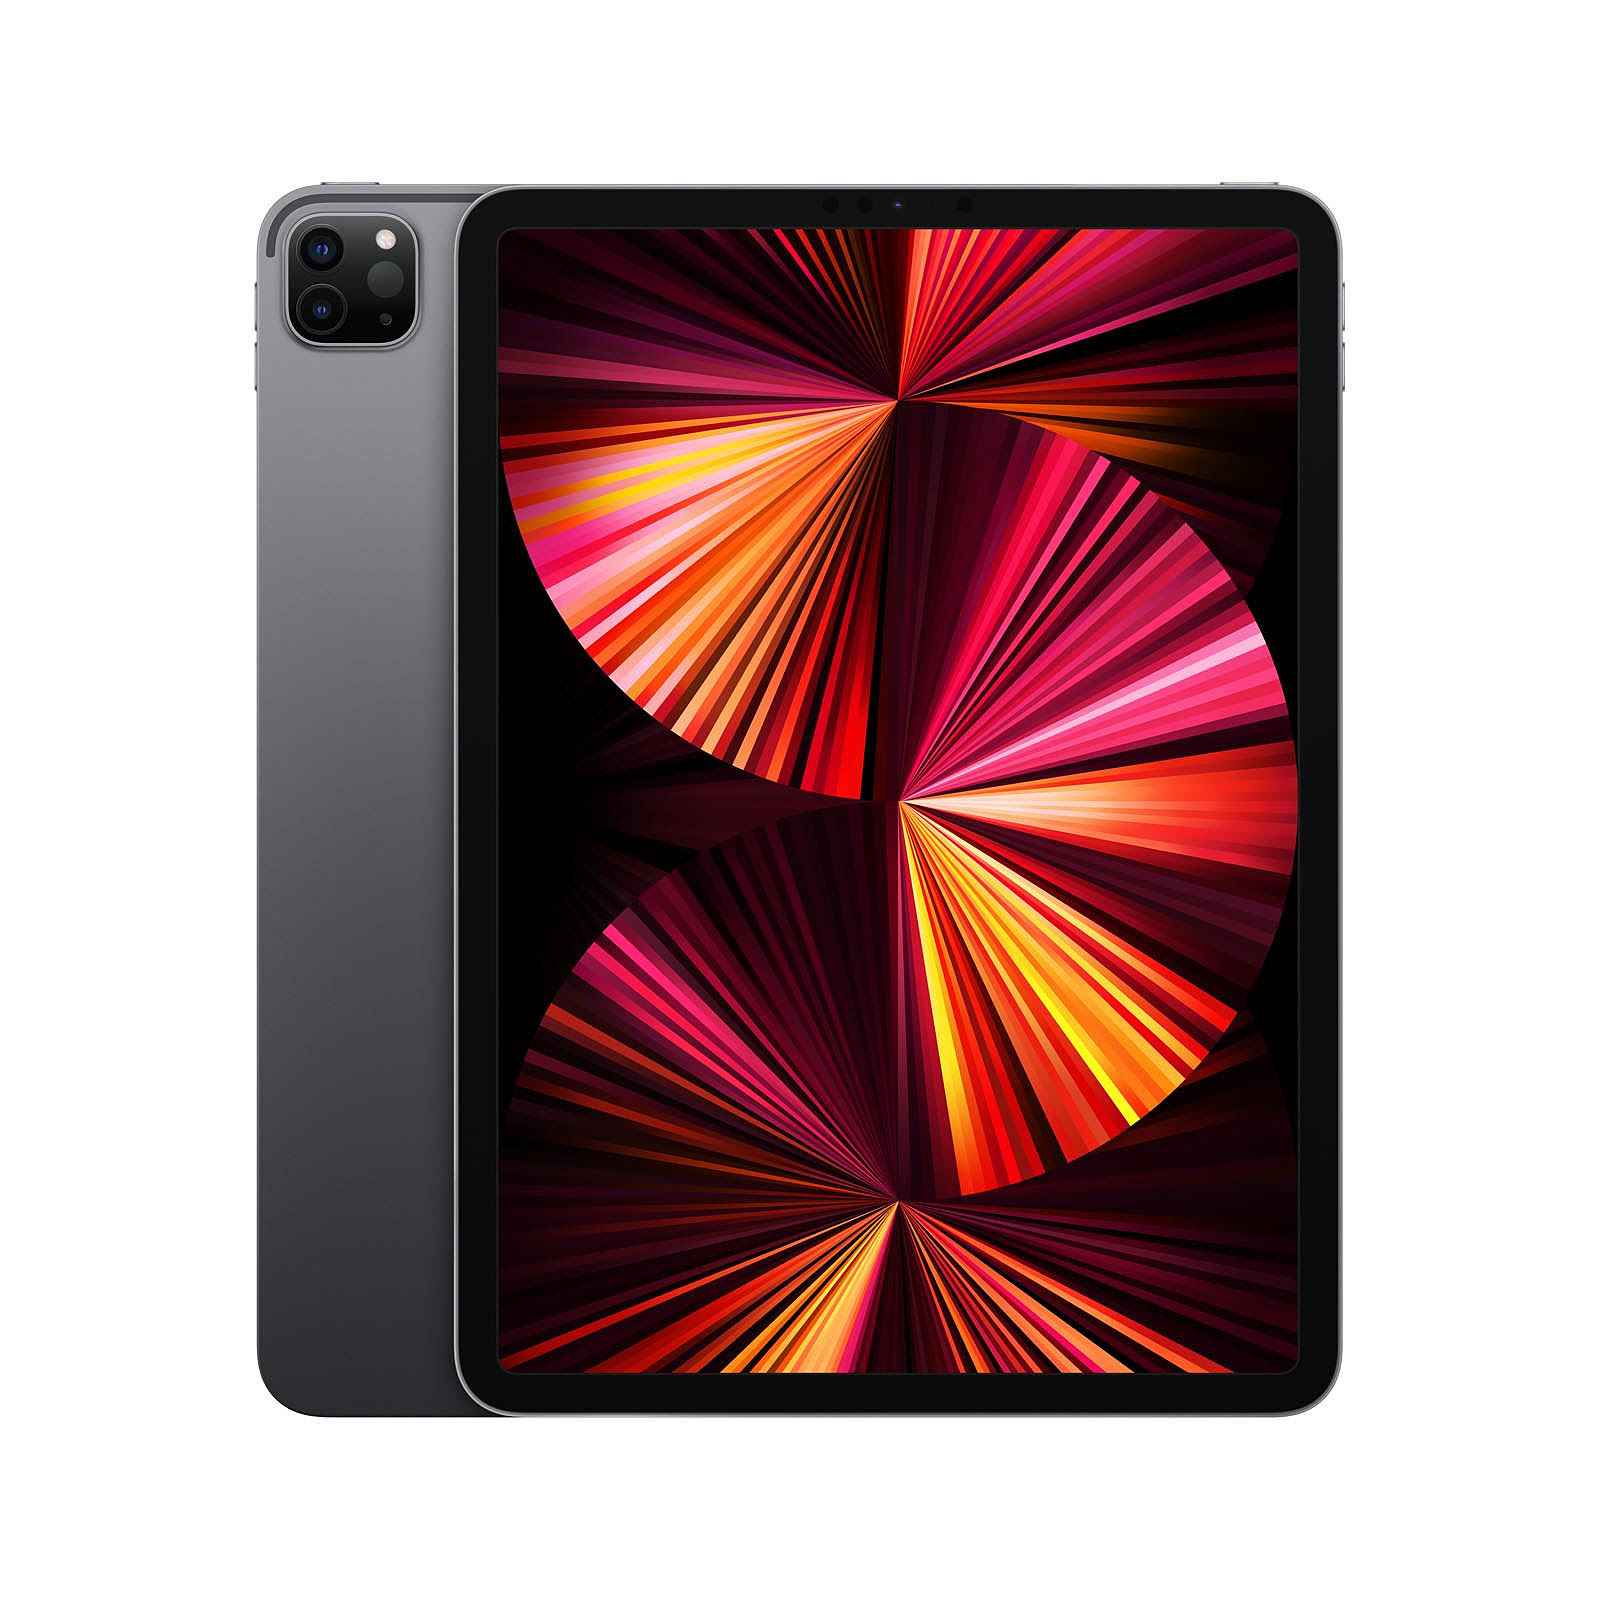 """iPad Pro 11"""" WiFi+Cell 512Go Gris Sid - MHW93NF/A (MHW93NF/A) - Achat / Vente Tablette tactile sur Picata.fr - 0"""